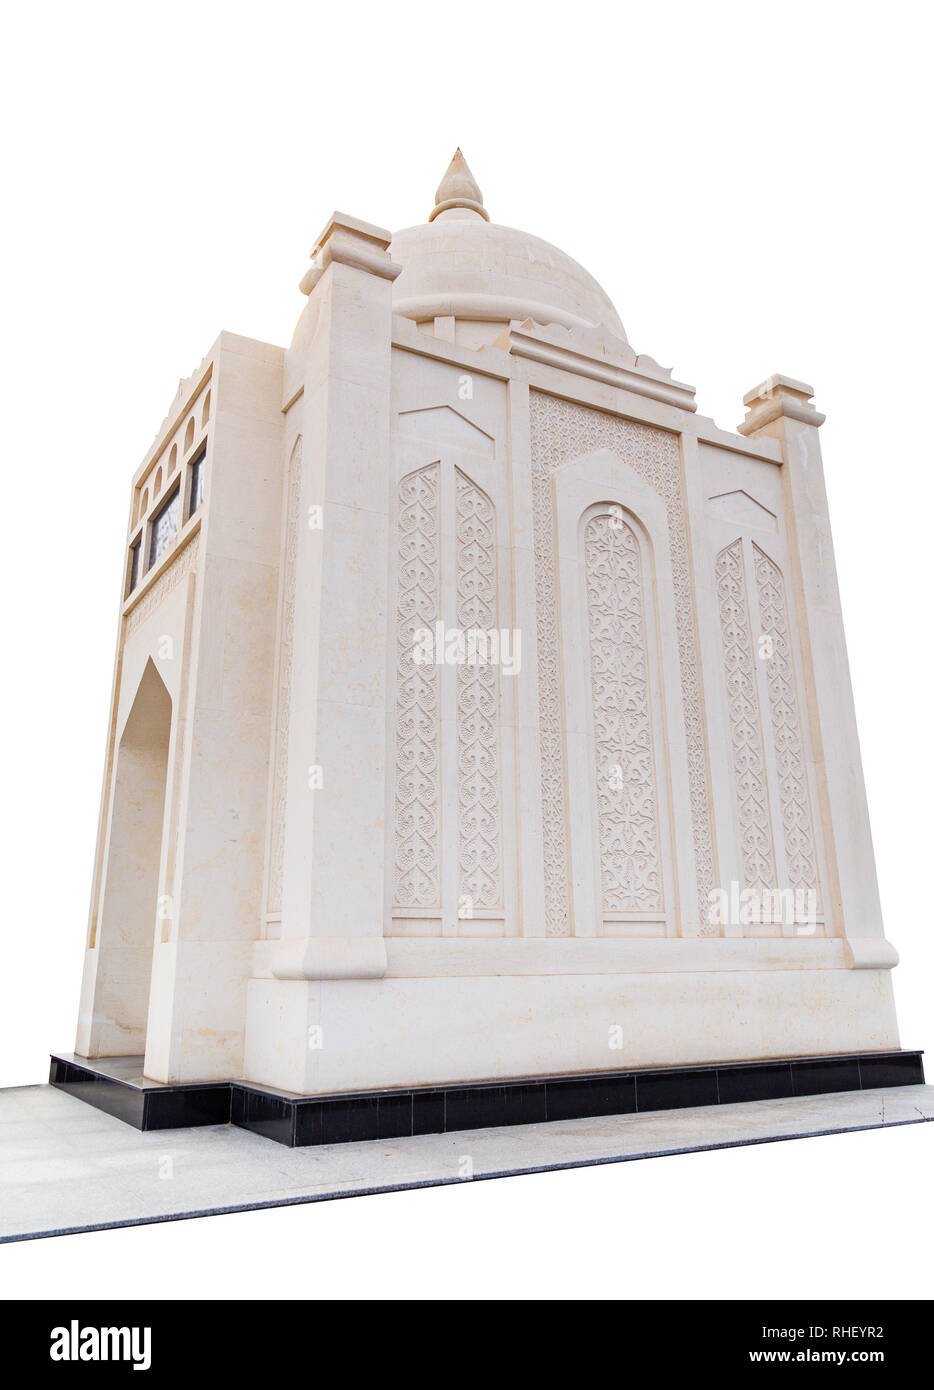 Ancient Muslim mausoleum on a white background - Stock Image